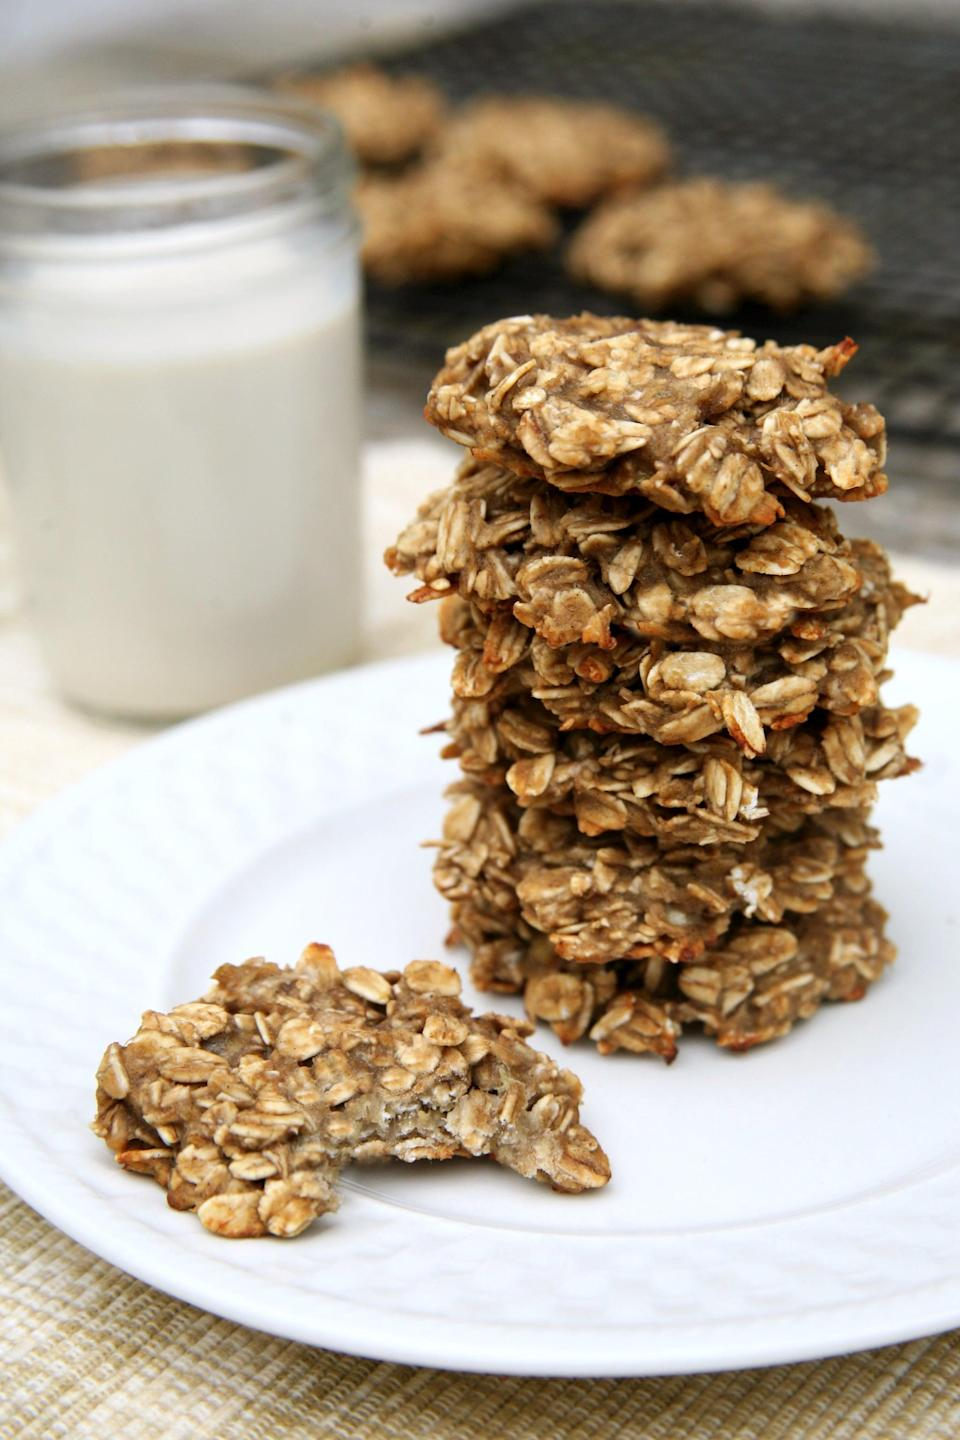 "<p>If you're trying to eat less sugar and less processed junk, this cookie recipe is perfect. They're only made with three ingredients you probably already have in your kitchen: bananas, rolled oats, and vanilla protein powder. That's it!</p> <p><strong>Calories:</strong> 62 per cookie<br> <strong>Protein:</strong> 2.8 grams</p> <p><strong>Get the recipe:</strong> <a href=""https://www.popsugar.com/fitness/Sugar-Free-Oatmeal-Cookies-42629183"" class=""link rapid-noclick-resp"" rel=""nofollow noopener"" target=""_blank"" data-ylk=""slk:banana oat cookies"">banana oat cookies</a></p>"